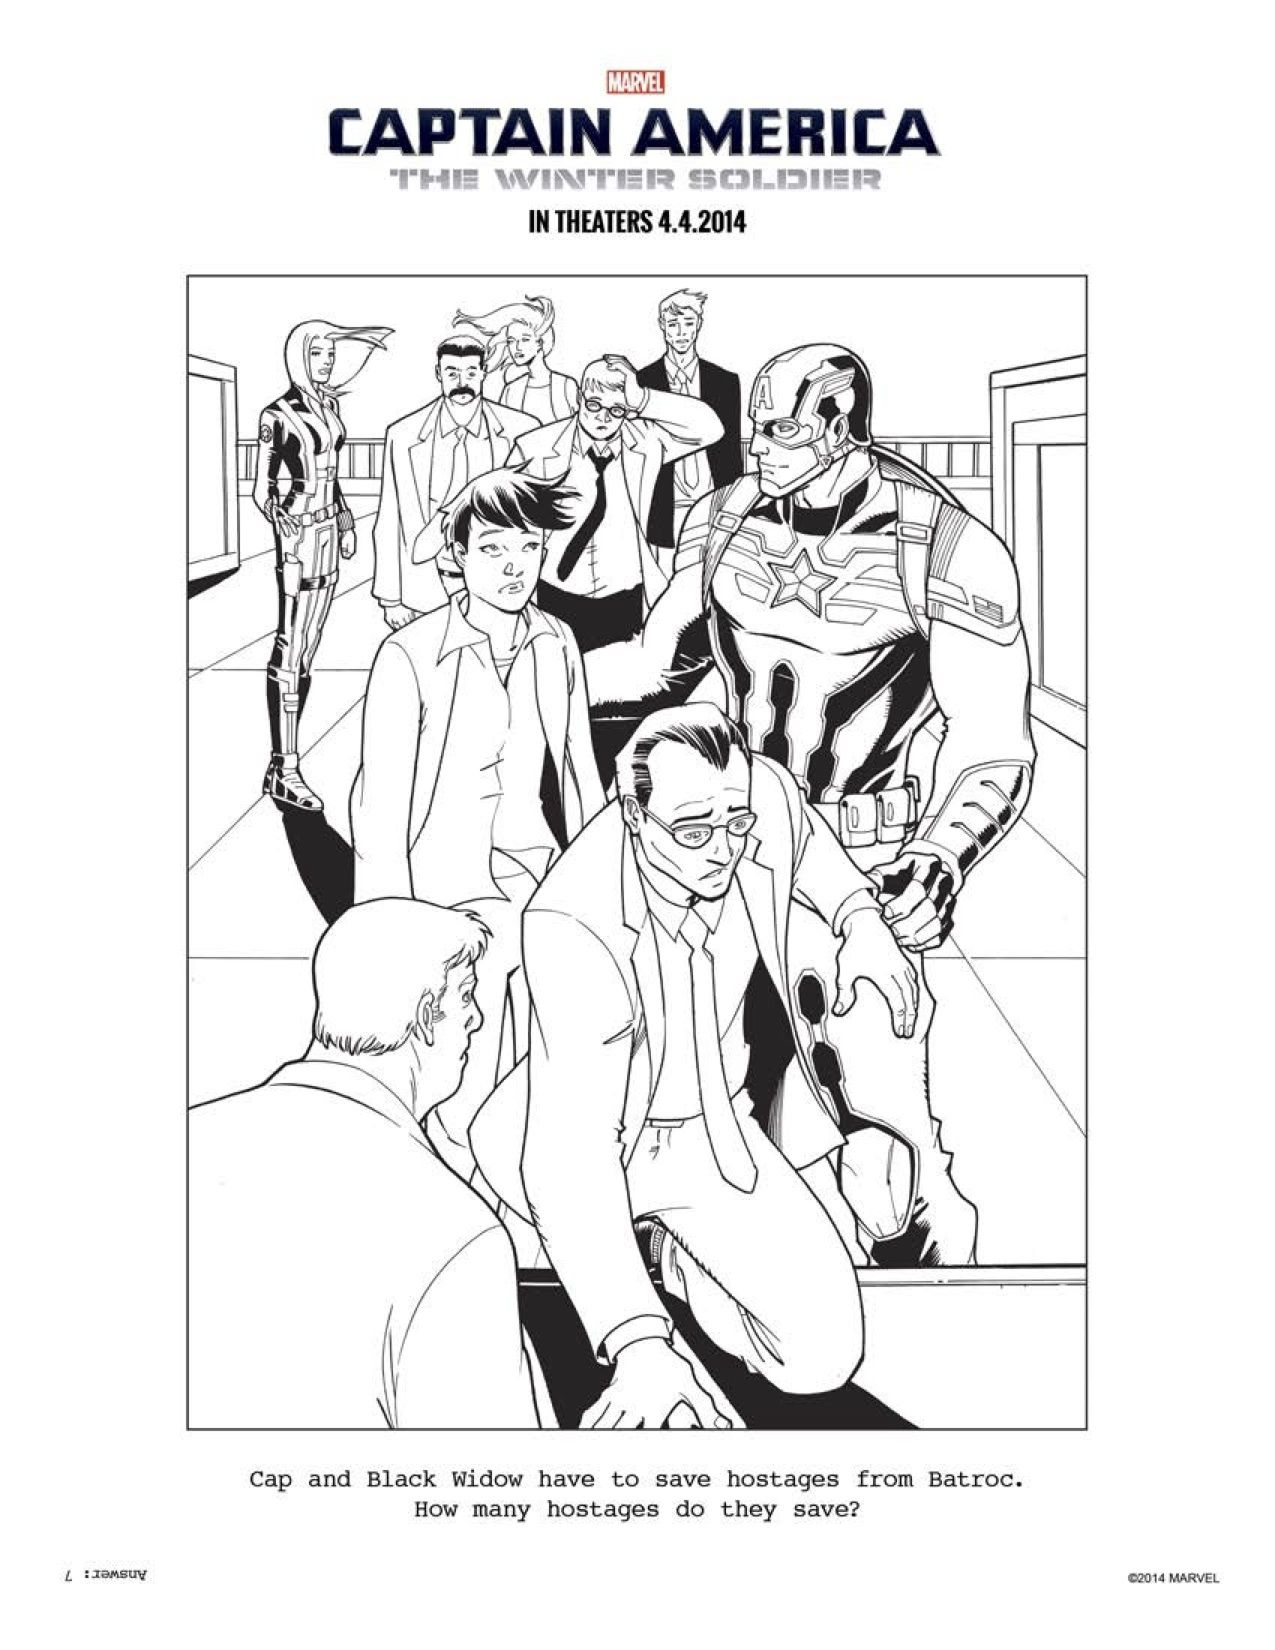 9 CAPTAIN AMERICA: THE WINTER SOLDIER coloring sheets to keep ...